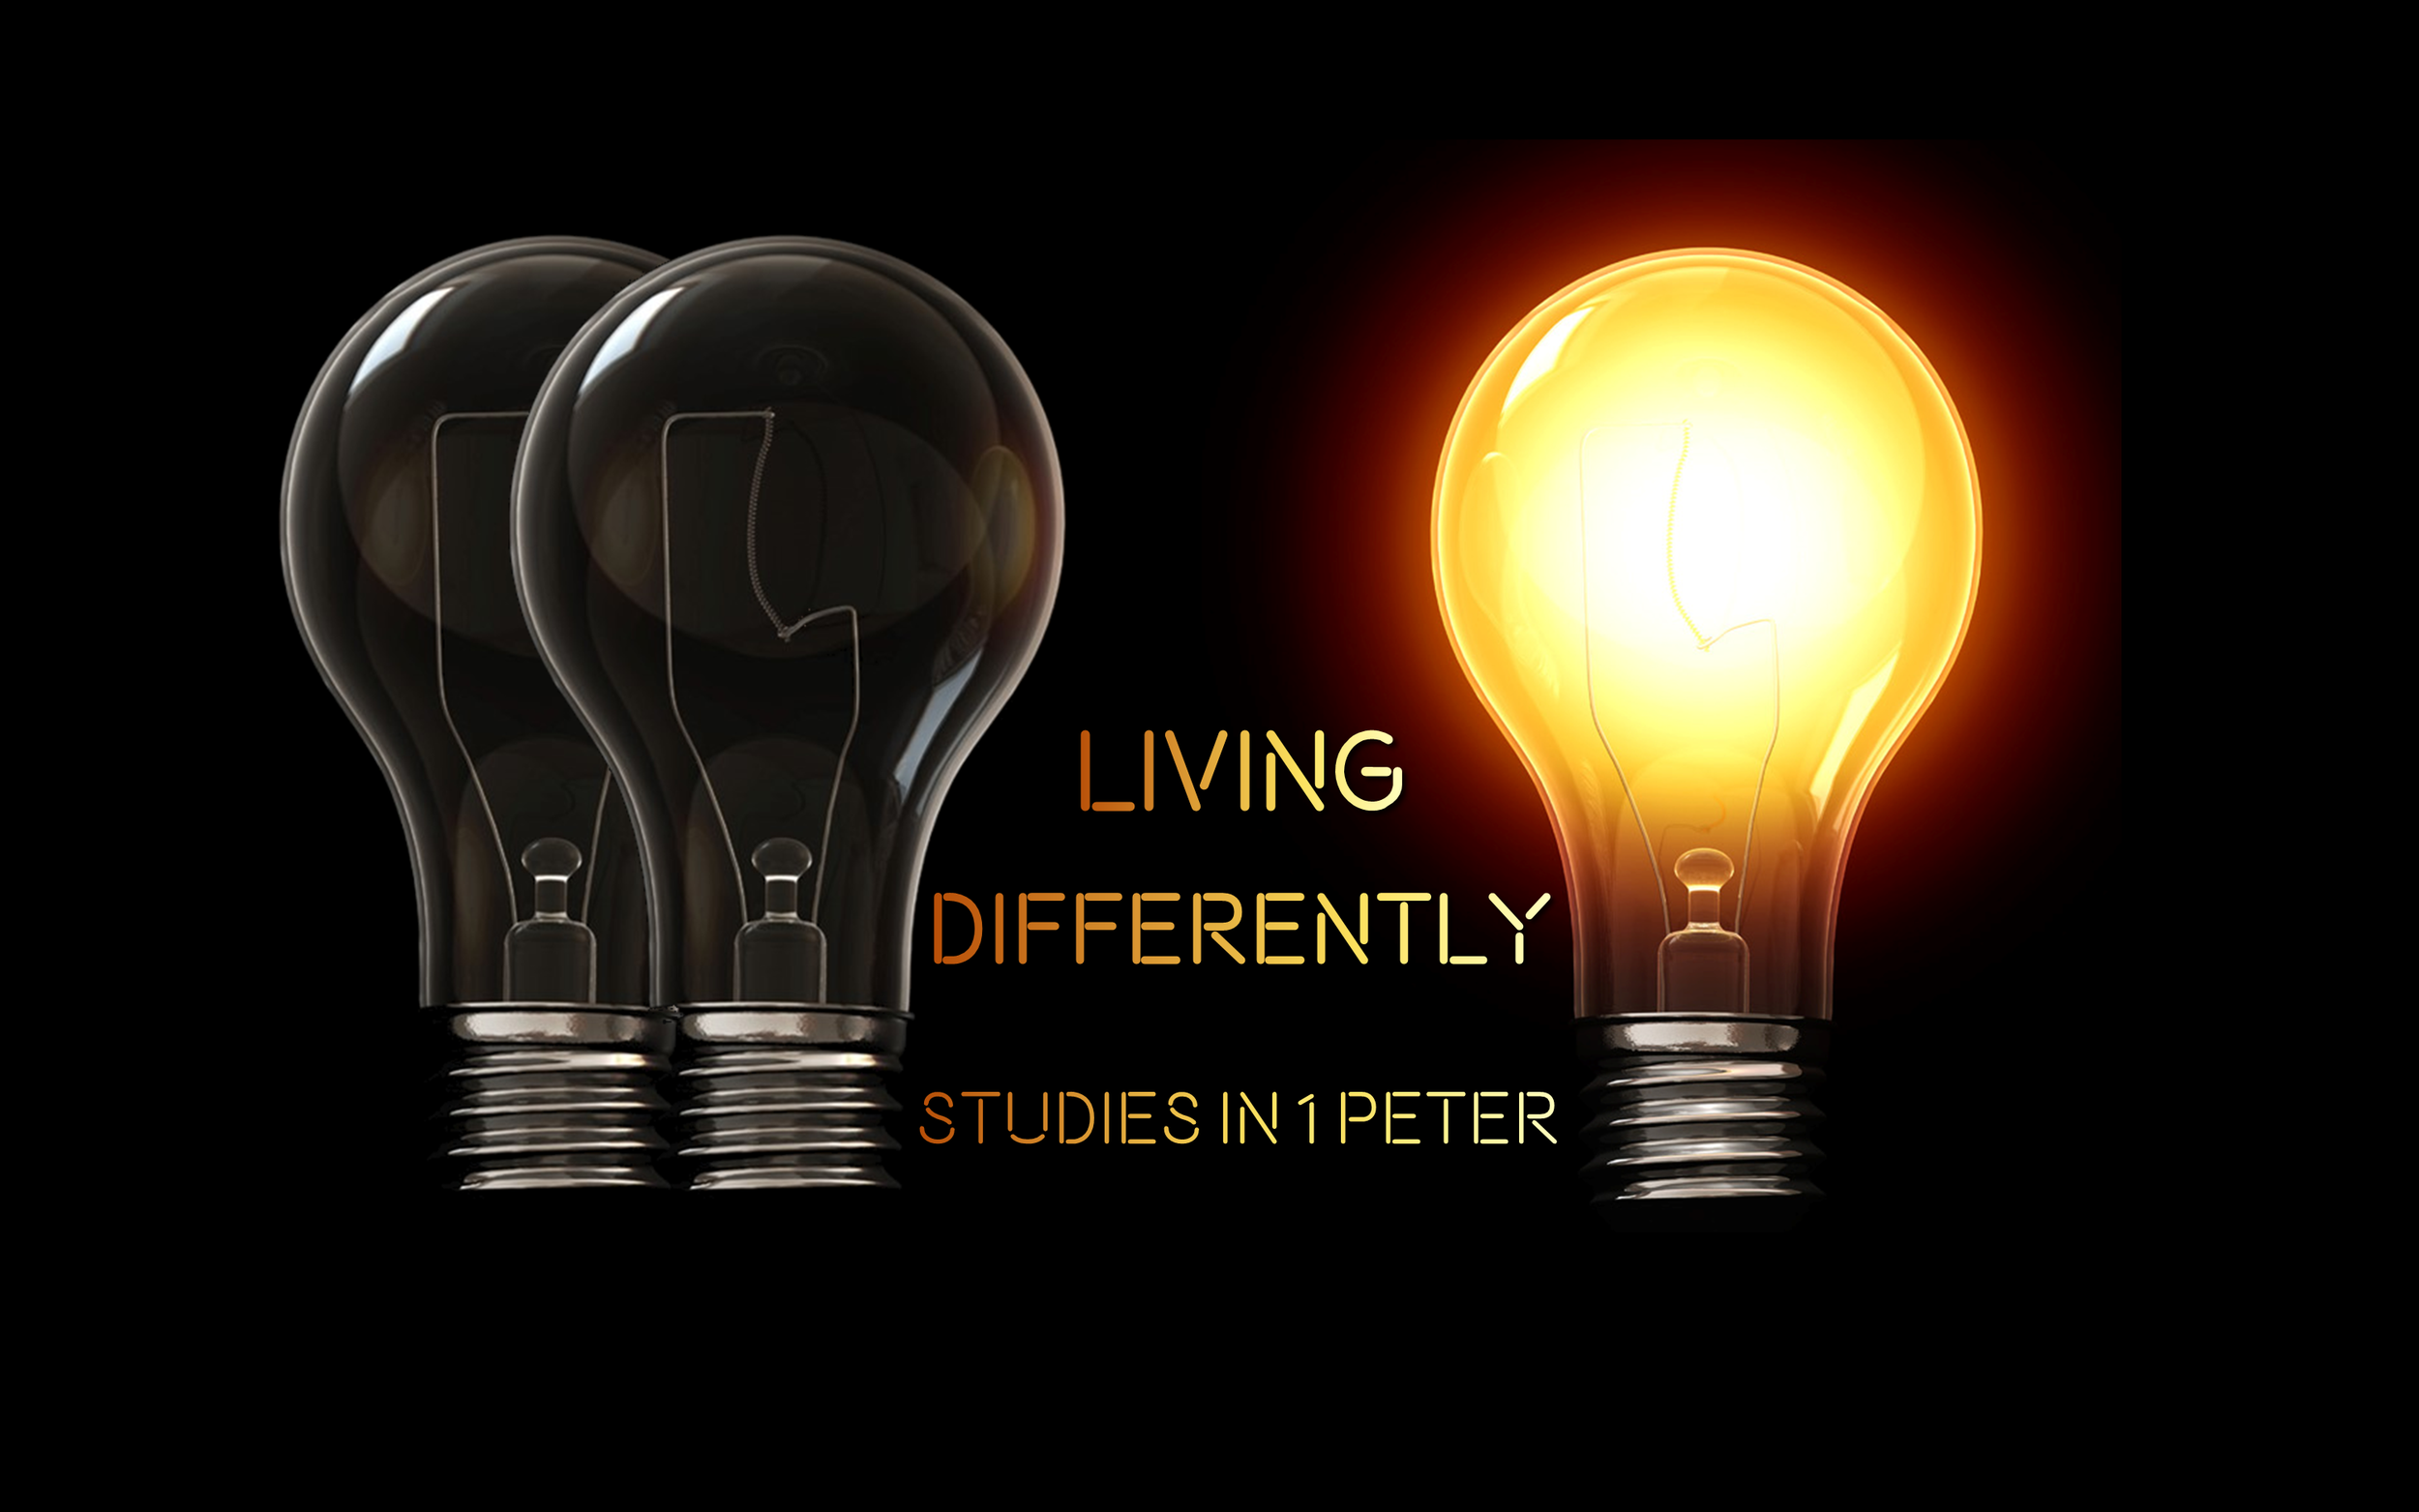 Live Differently rect.png